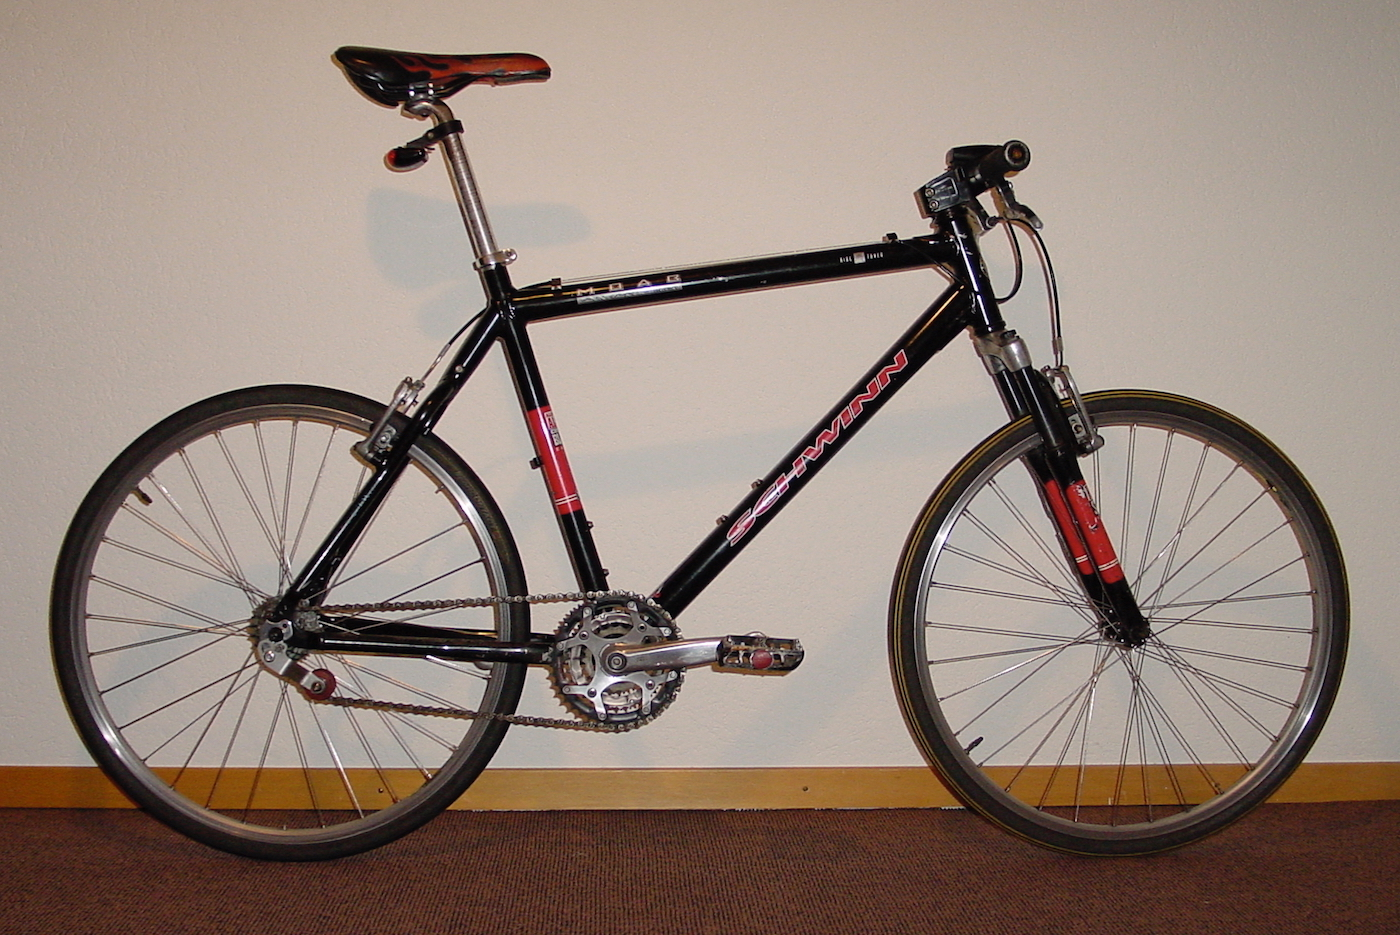 21.01.2006: cheapest conversion to a singlespeed